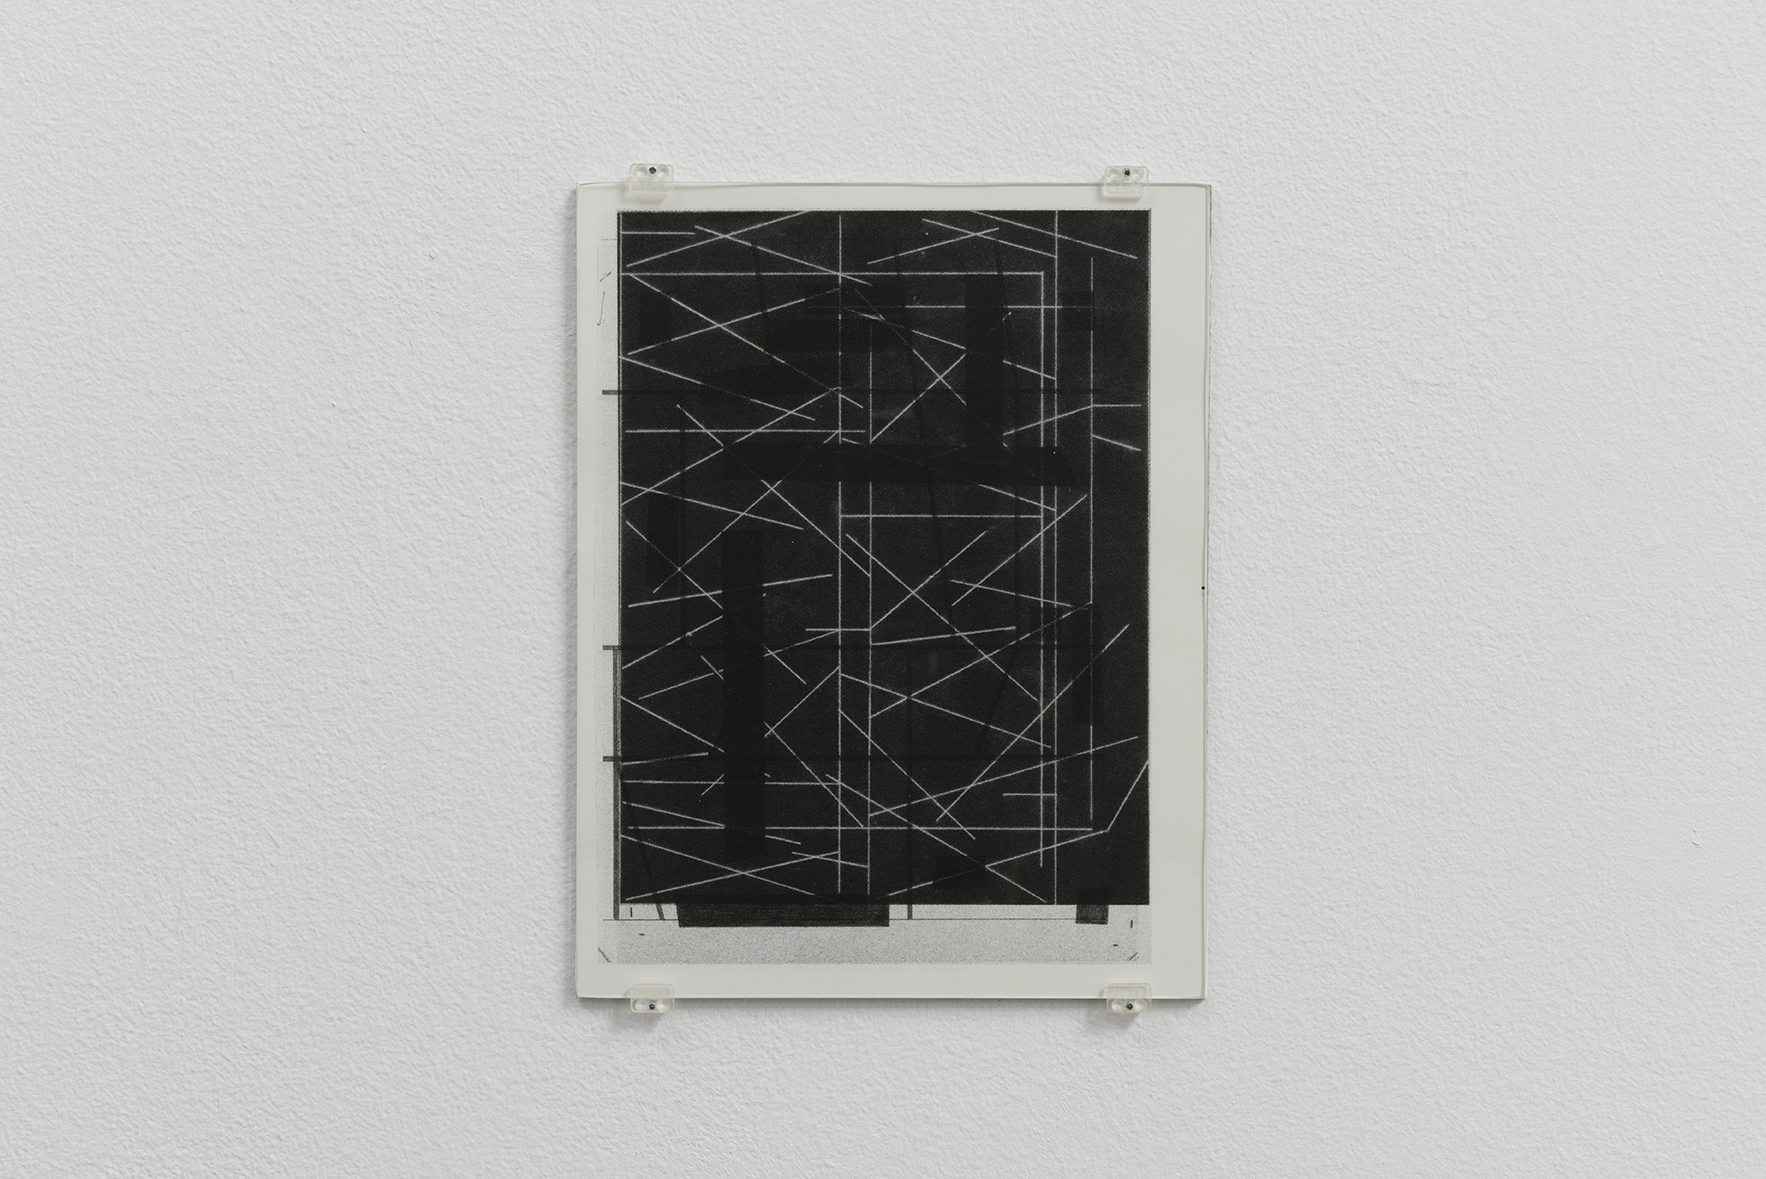 Zeichnungen 2, 2015 | A Drawing Placed Between Two Objects (with Mark Manders) | ProjecteSD